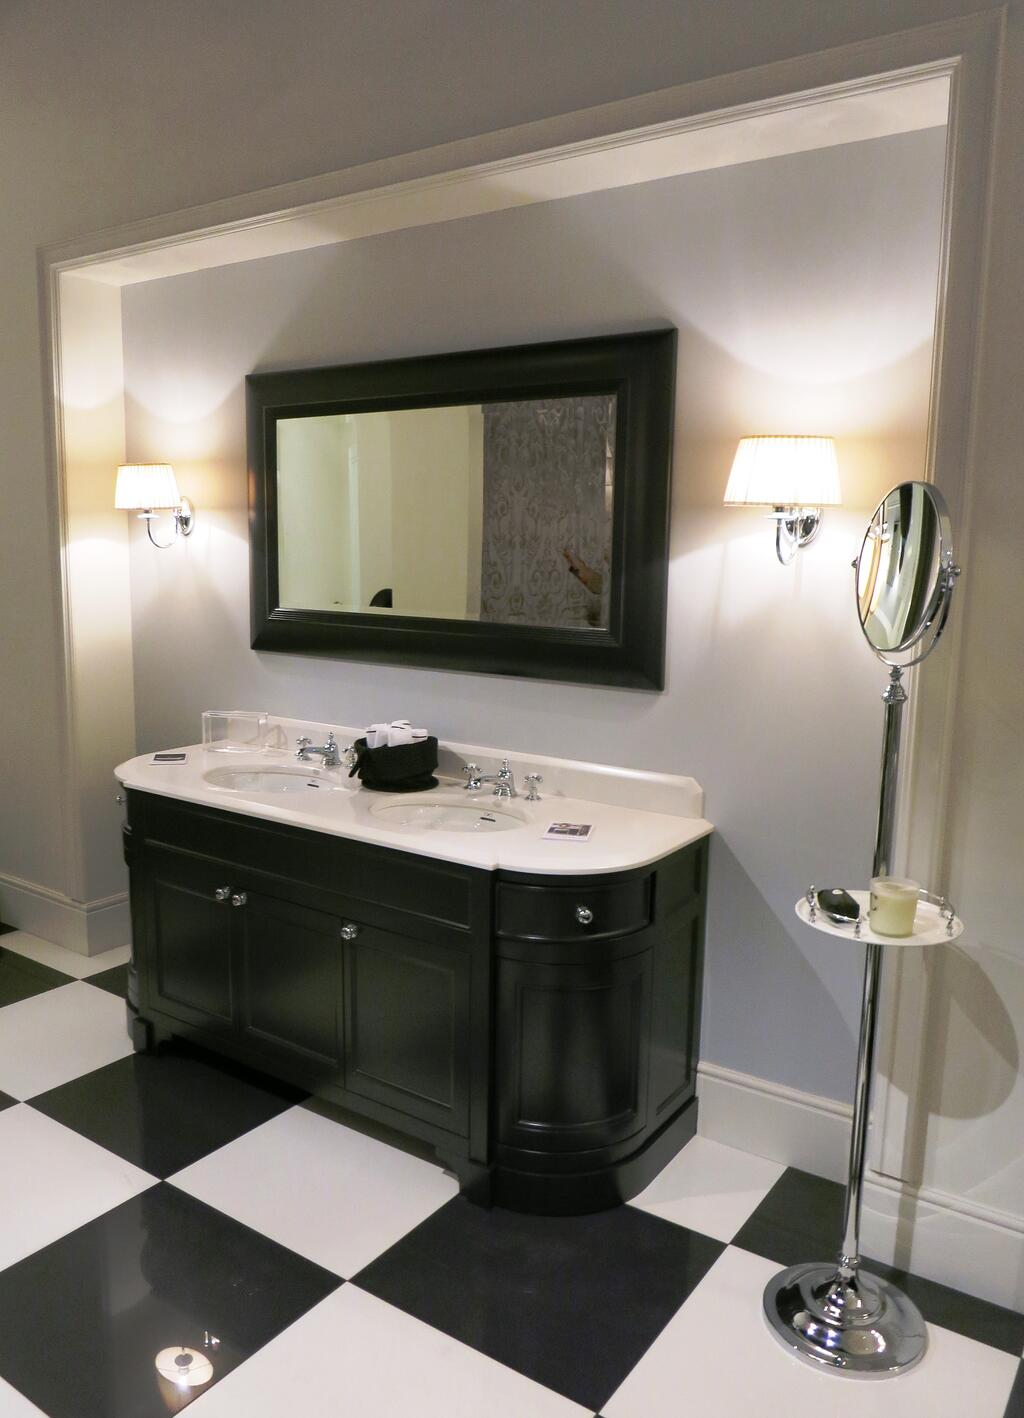 Future Trends in Bathroom Furnishings